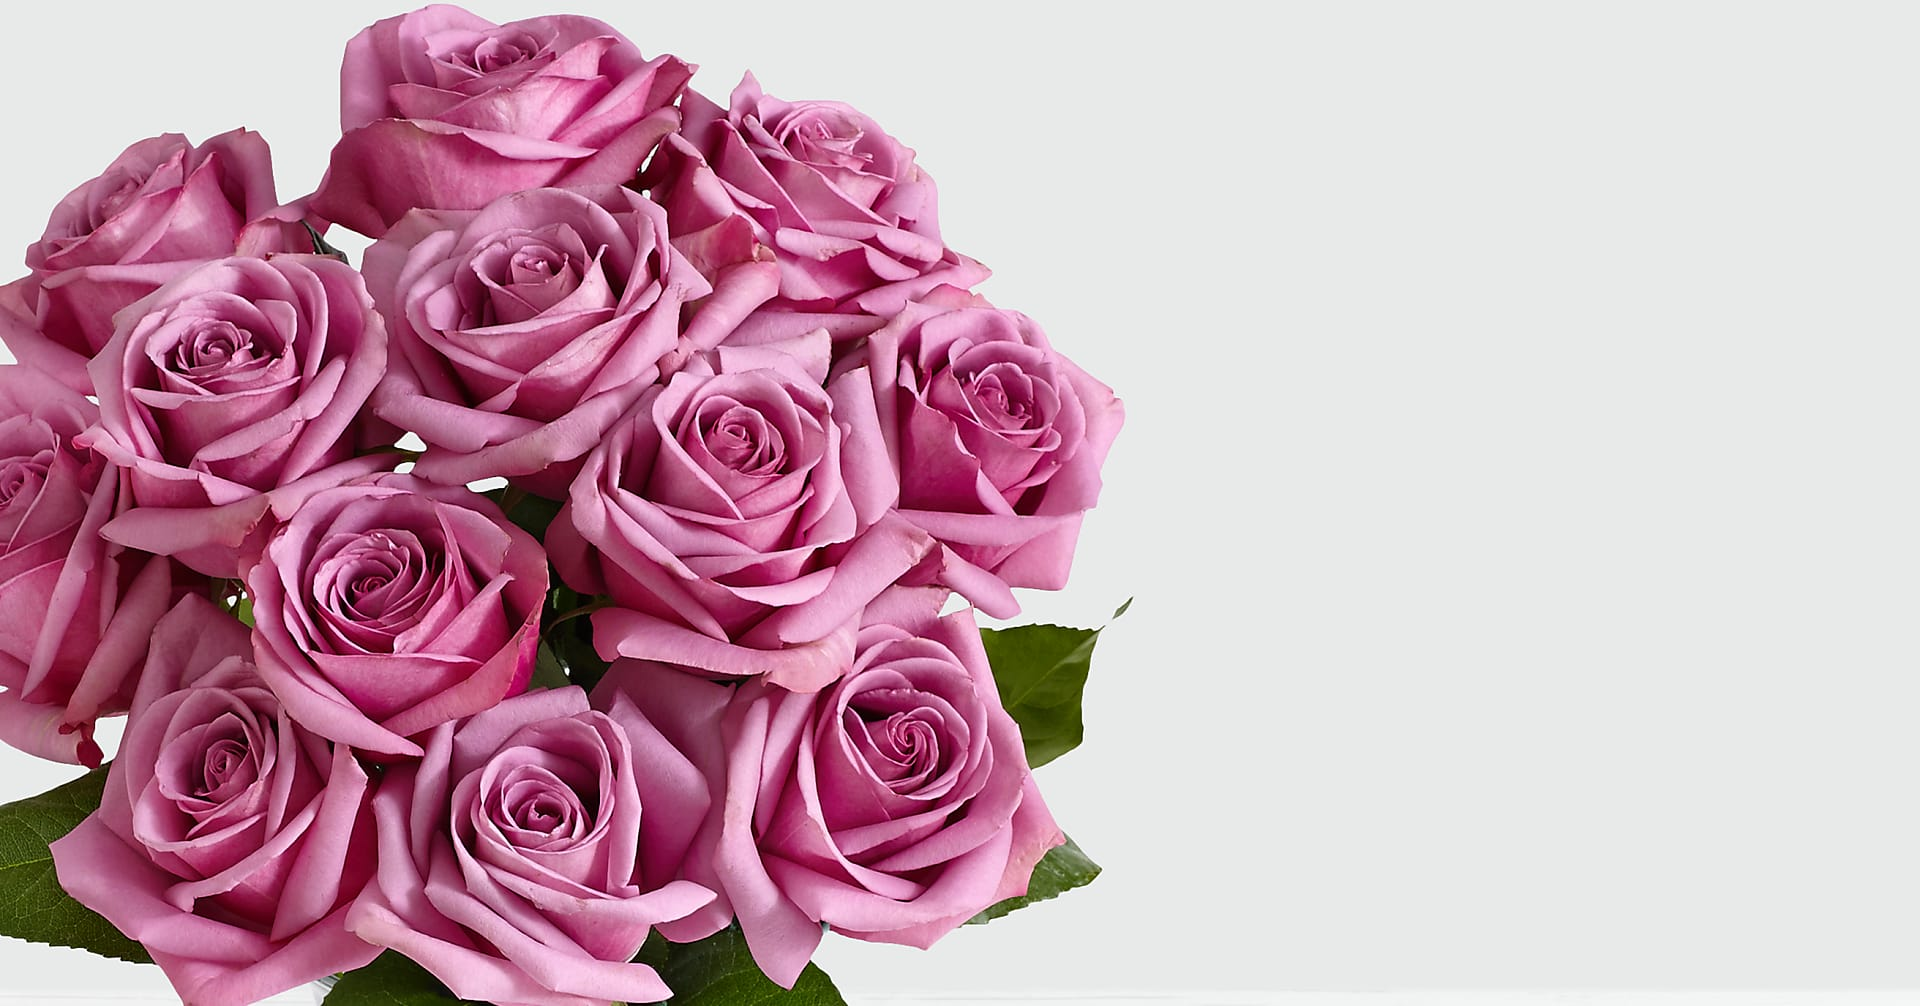 Mulberry Margarita - 12 Stems of Purple Roses - Image 2 Of 3